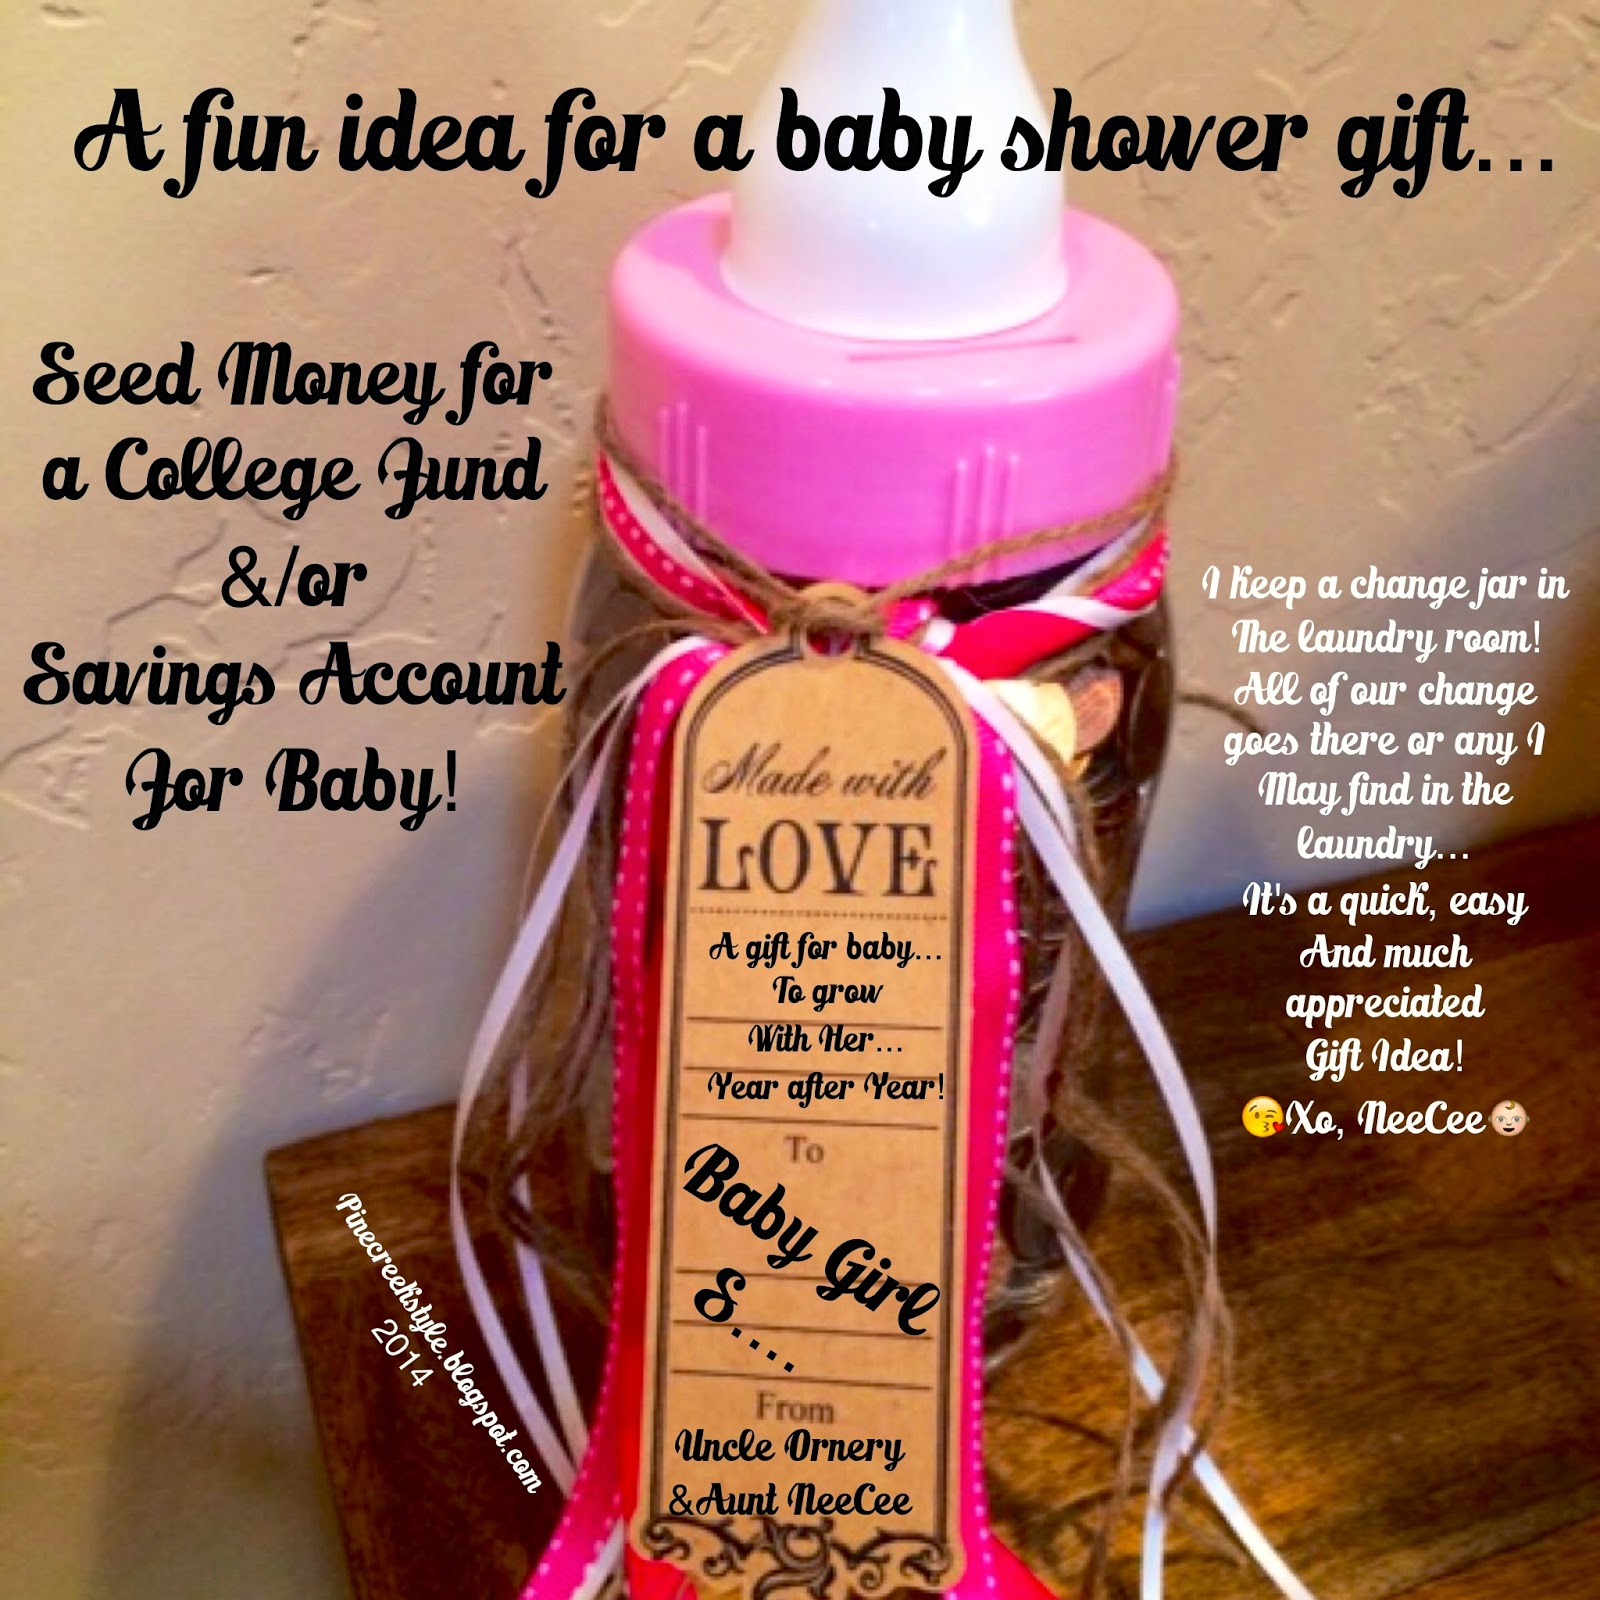 pine creek style baby shower gift idea, Baby shower